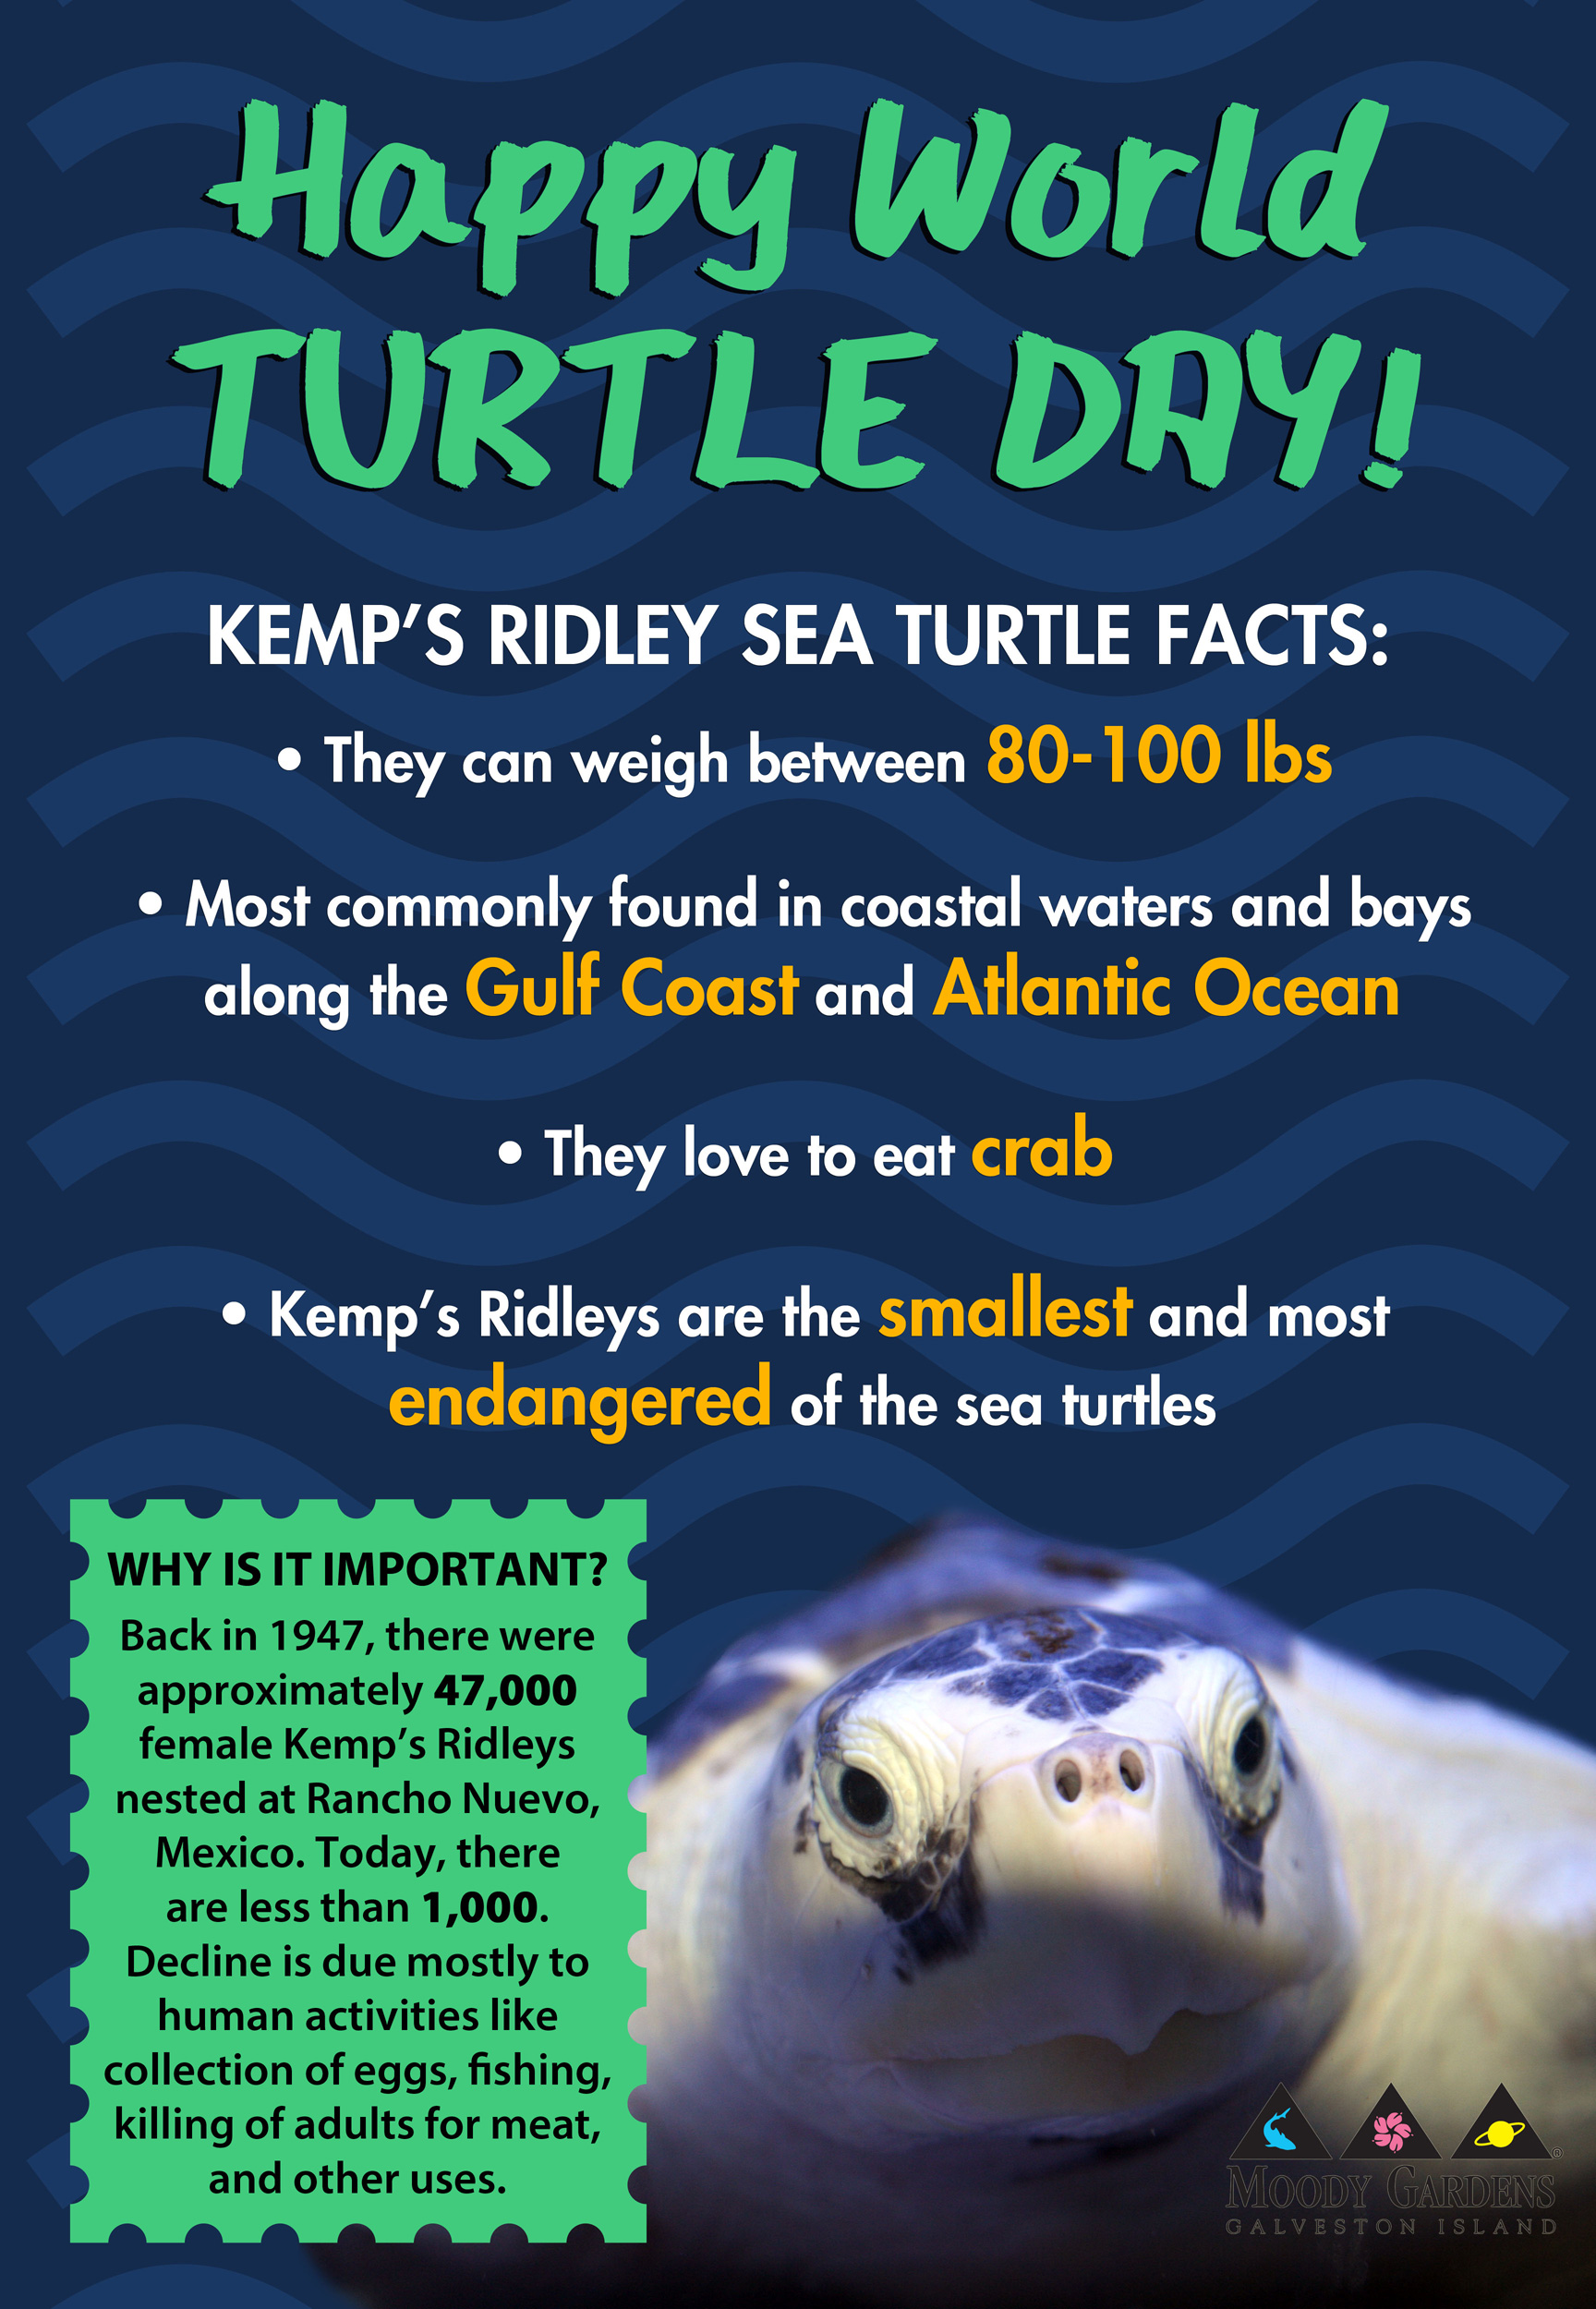 Happy World Turtle Day: Meet the Kemp's Ridley Sea Turtle